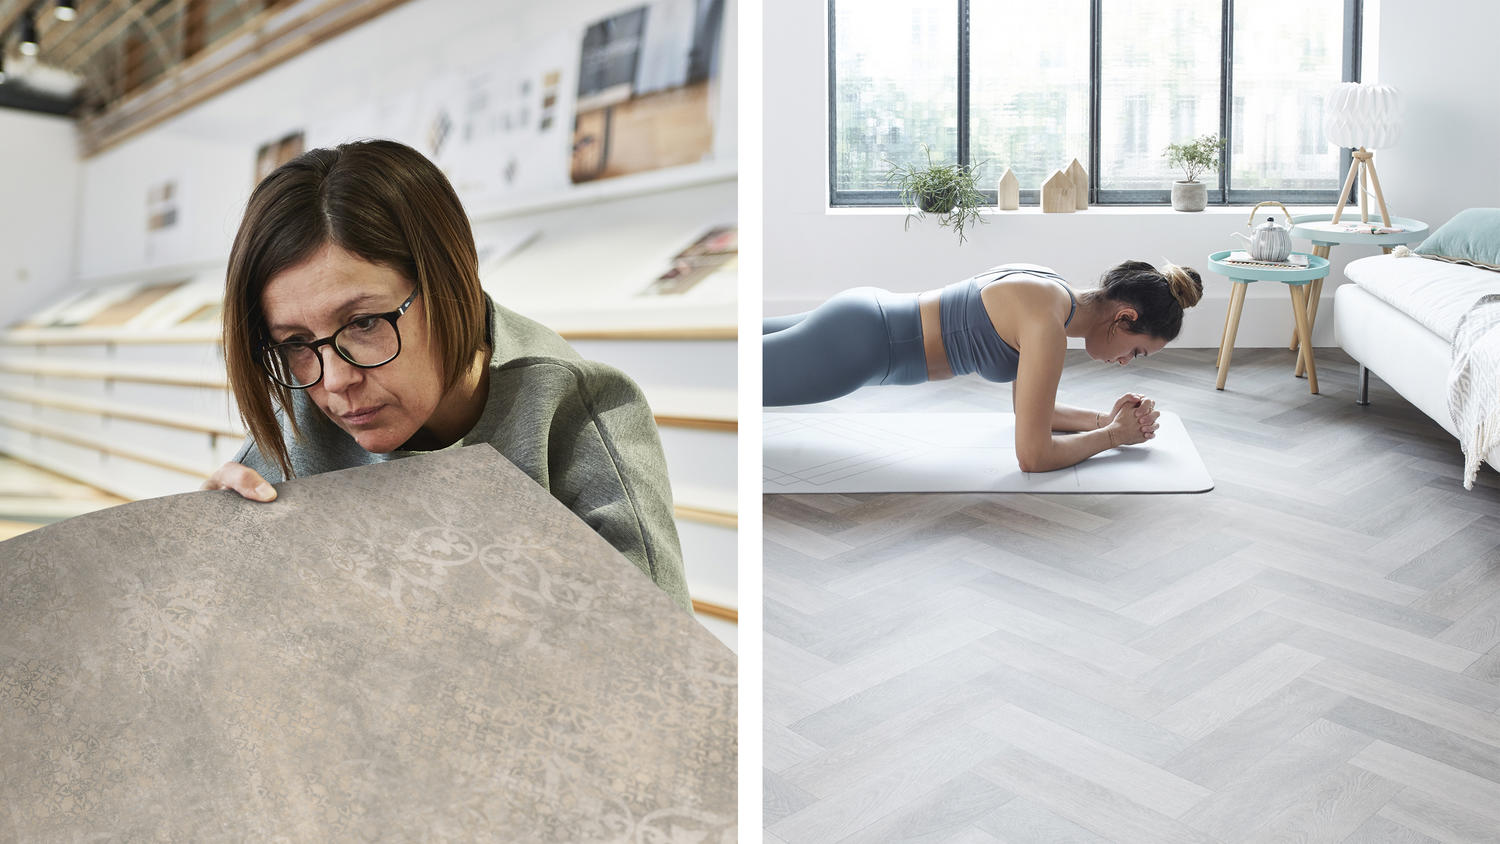 Designer selecting Tarkett flooring next to a young woman exercising in her living room